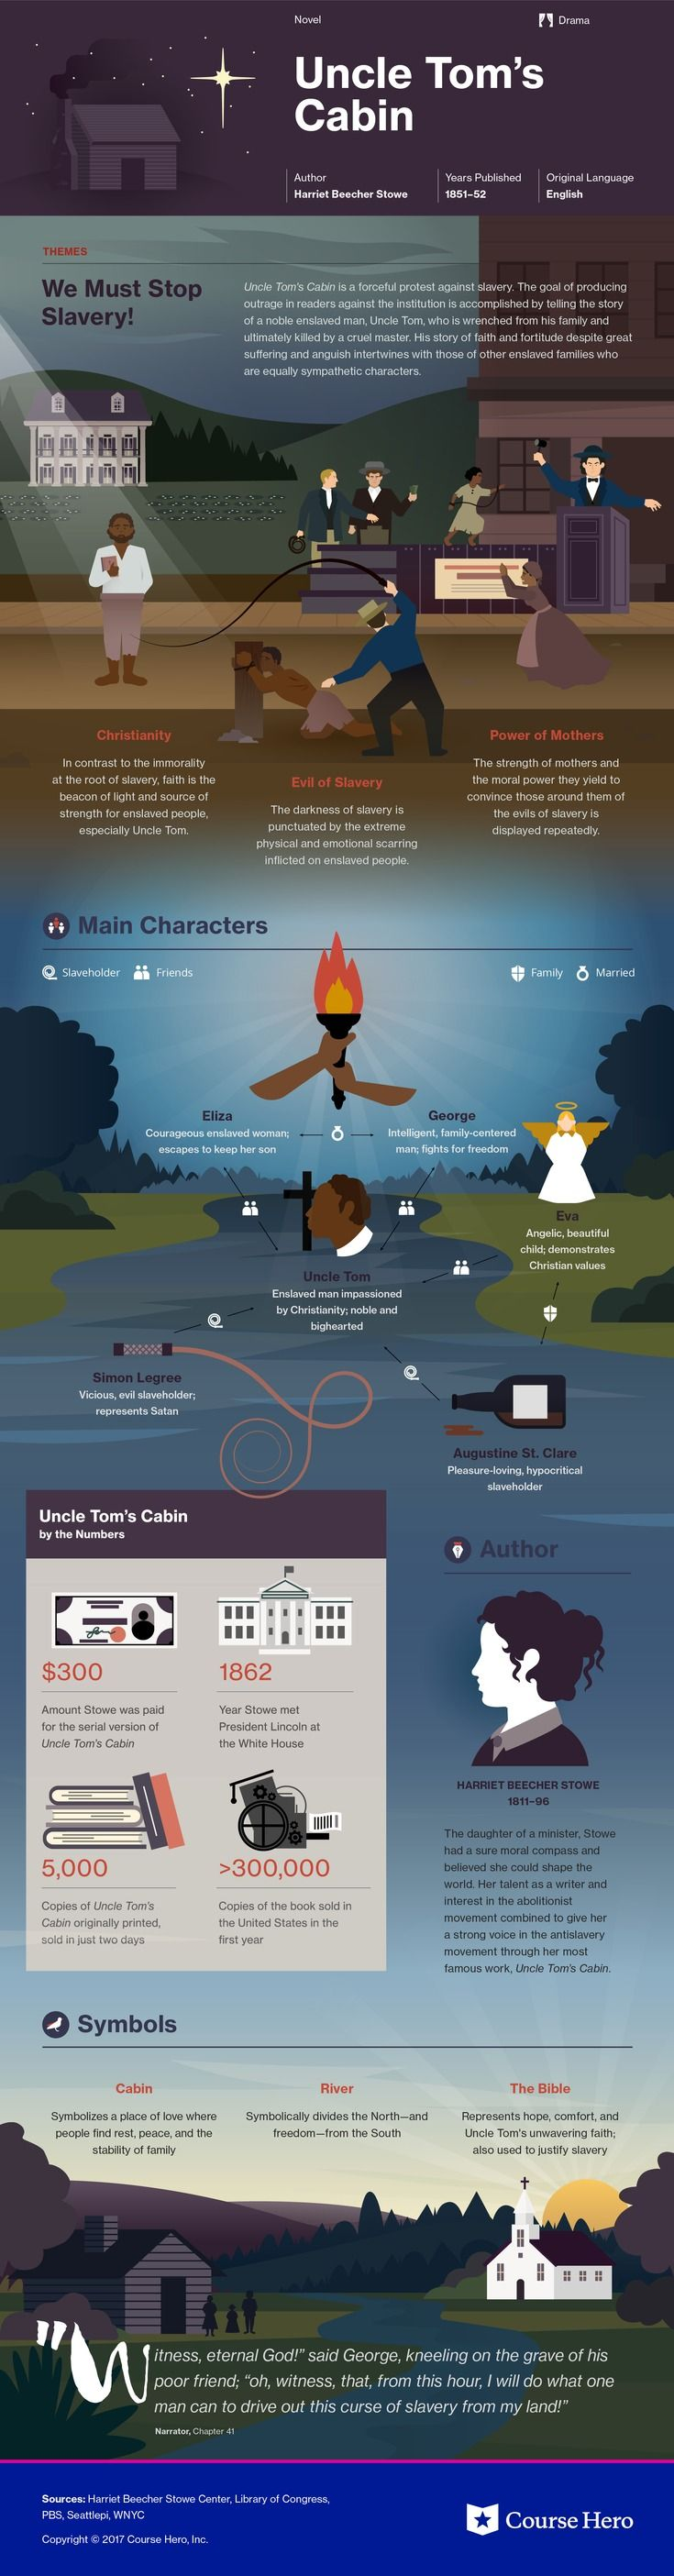 Harriet Beecher Stowe's Uncle Tom's Cabin Infographic | Course Hero  https://www.coursehero.com/lit/Uncle-Toms-Cabin/